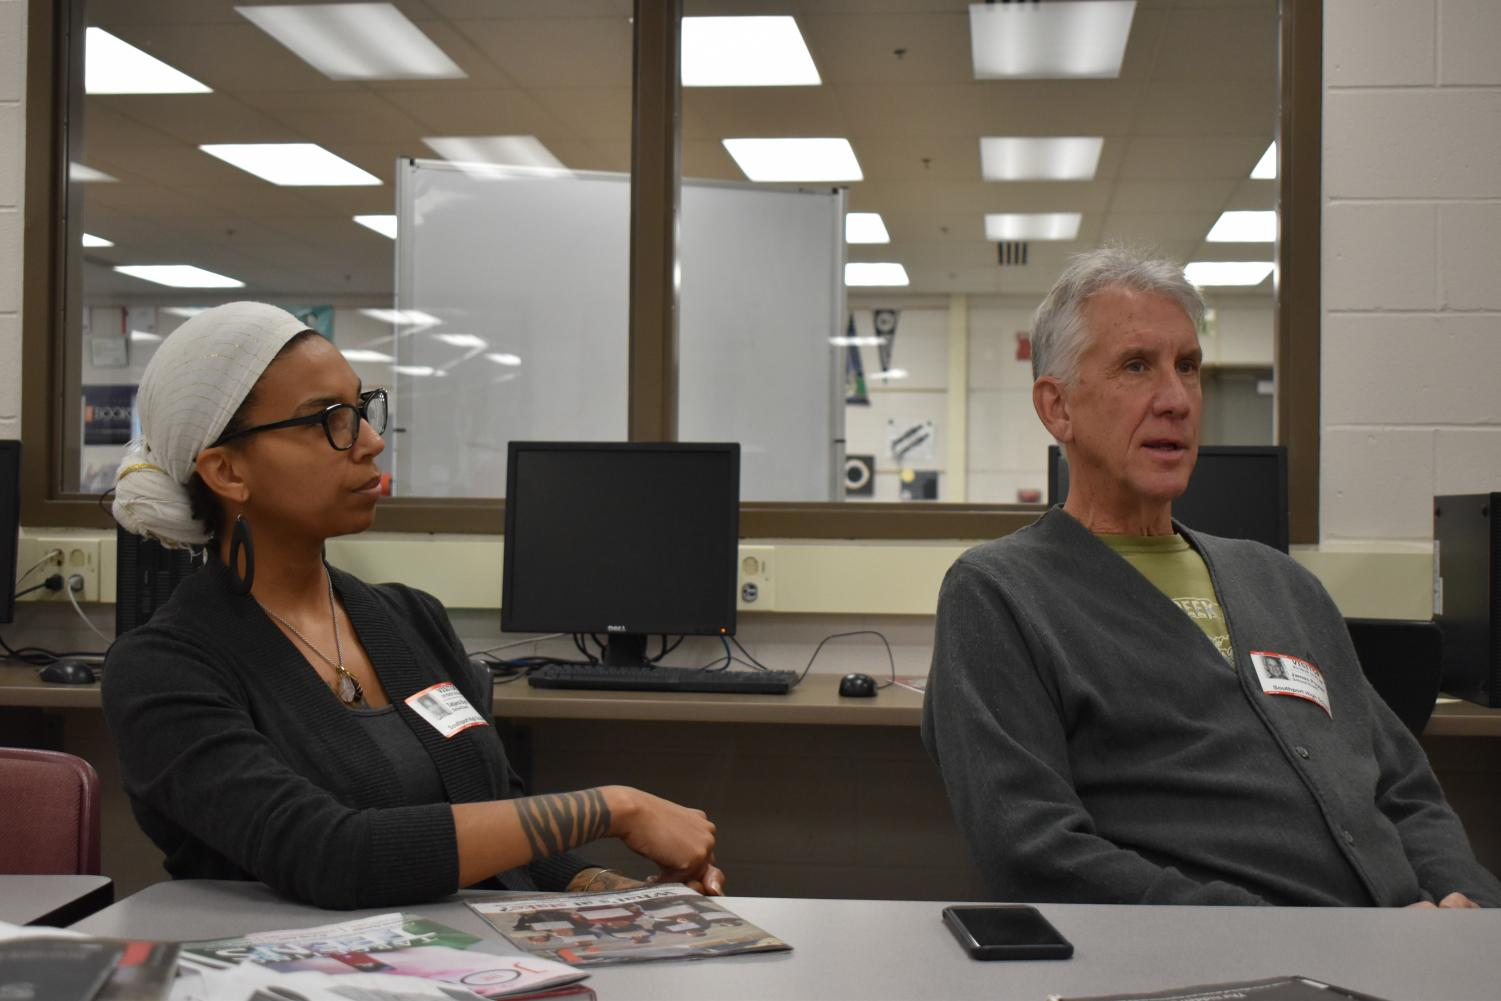 Executive Director Jim Poyser and Resilient Schools Coordinator Tatjana Rebelle from Earth Charter Indiana talk with The Journal during iPass on Jan. 16. This interview followed a walkthrough of SHS to see how sustainable the school is.